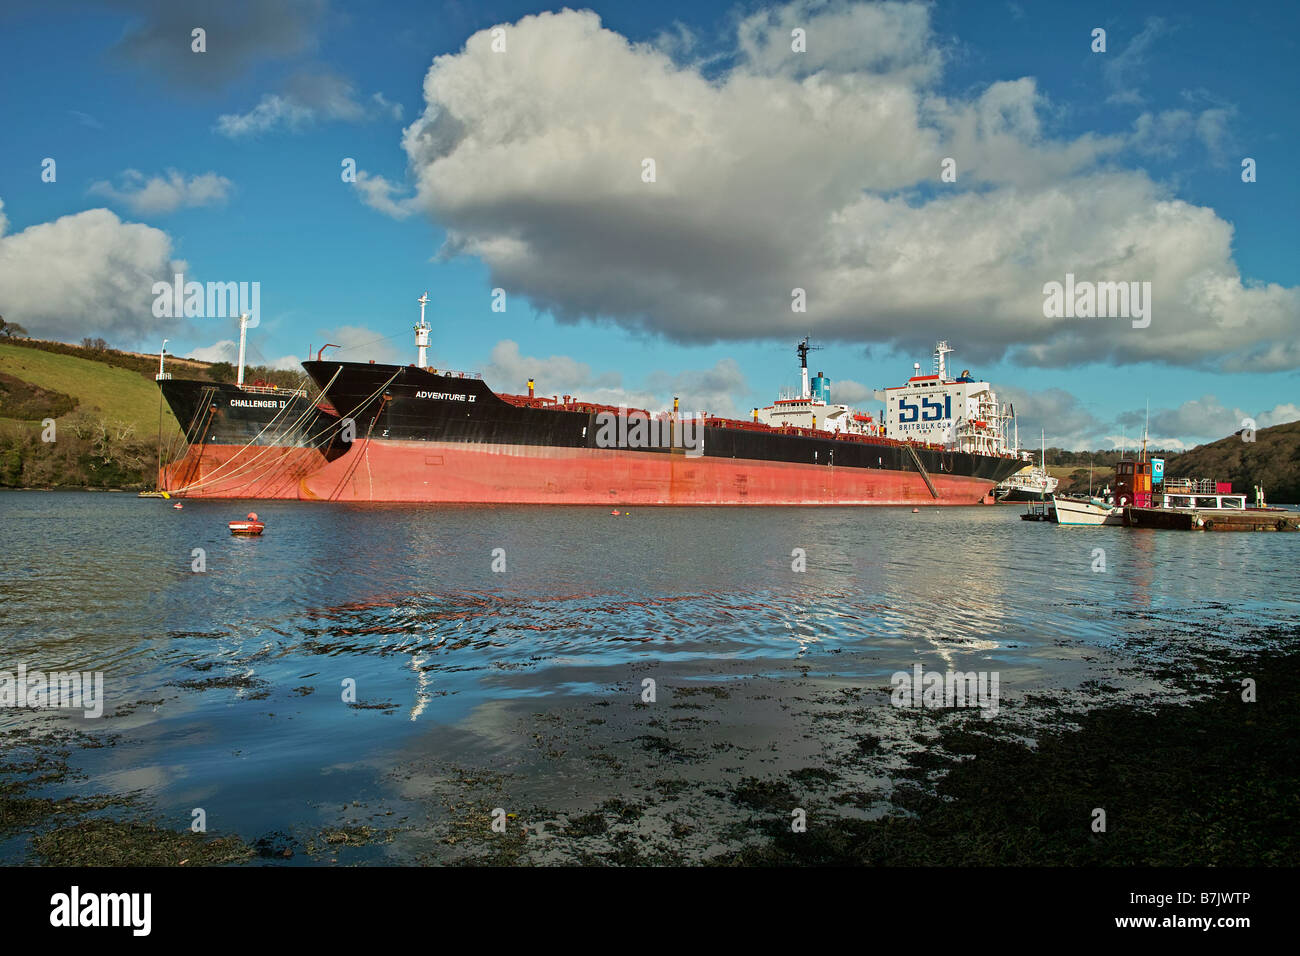 a tanker laid up in deep water on the river fal near truro,cornwall,uk - Stock Image